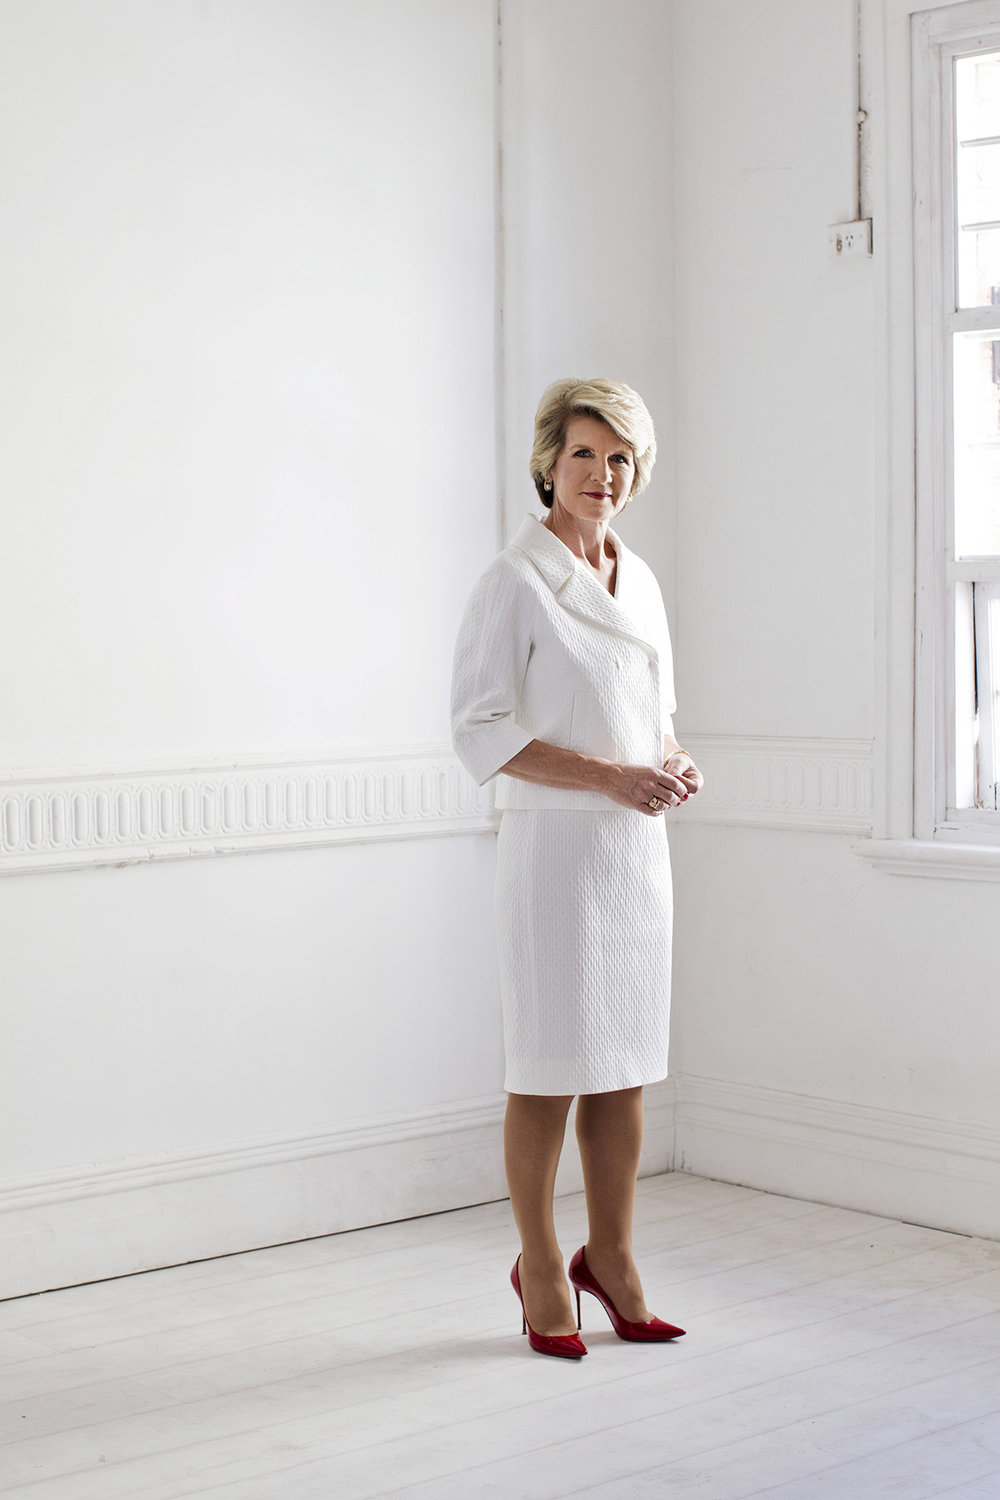 Foreign Minister - Julie Bishop